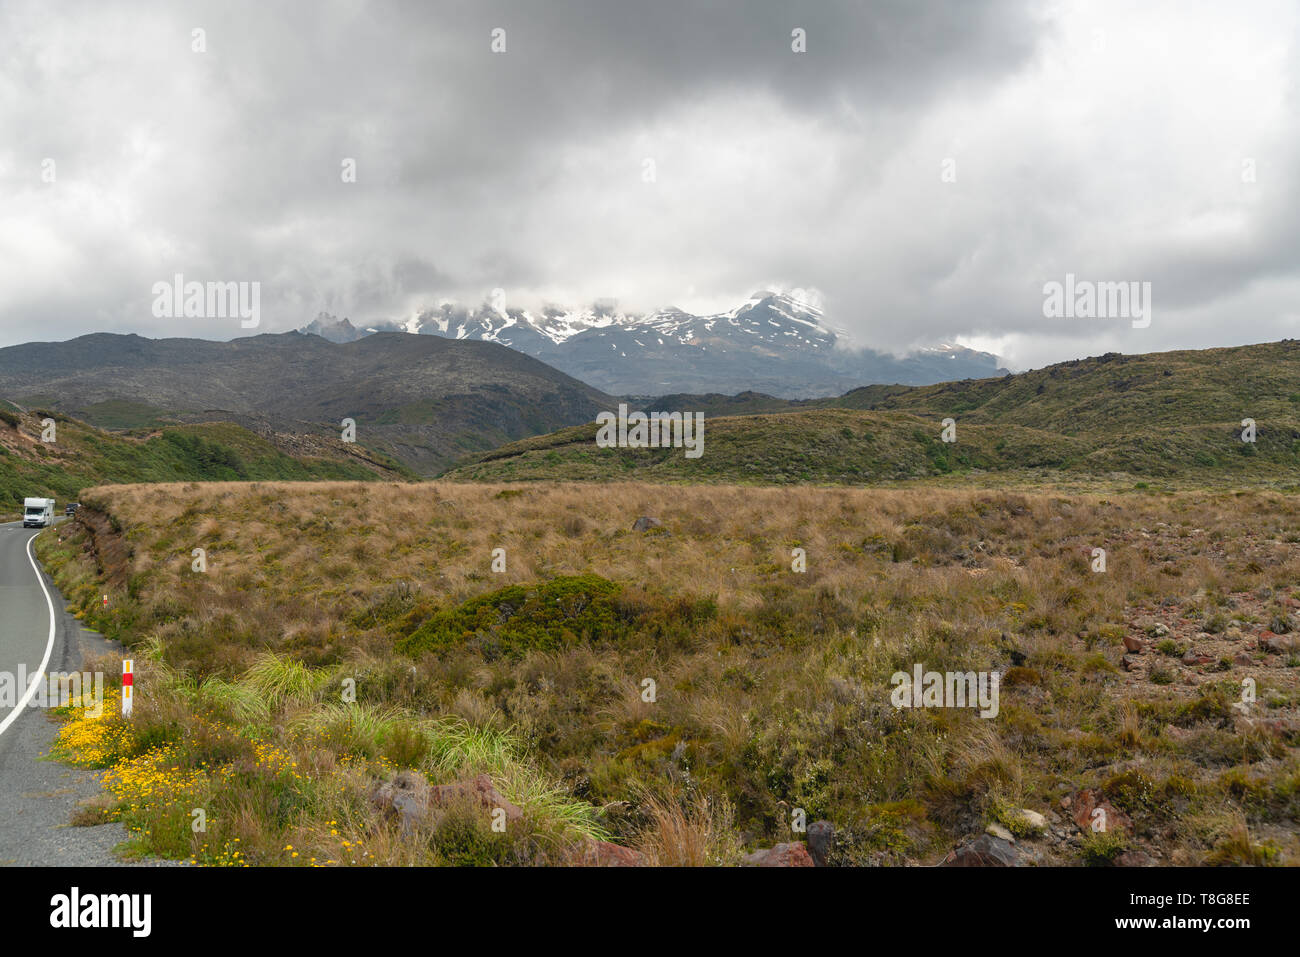 On The Road to Mount Ruapehu, Tongariro National Park, North Island of New Zealand - Stock Image